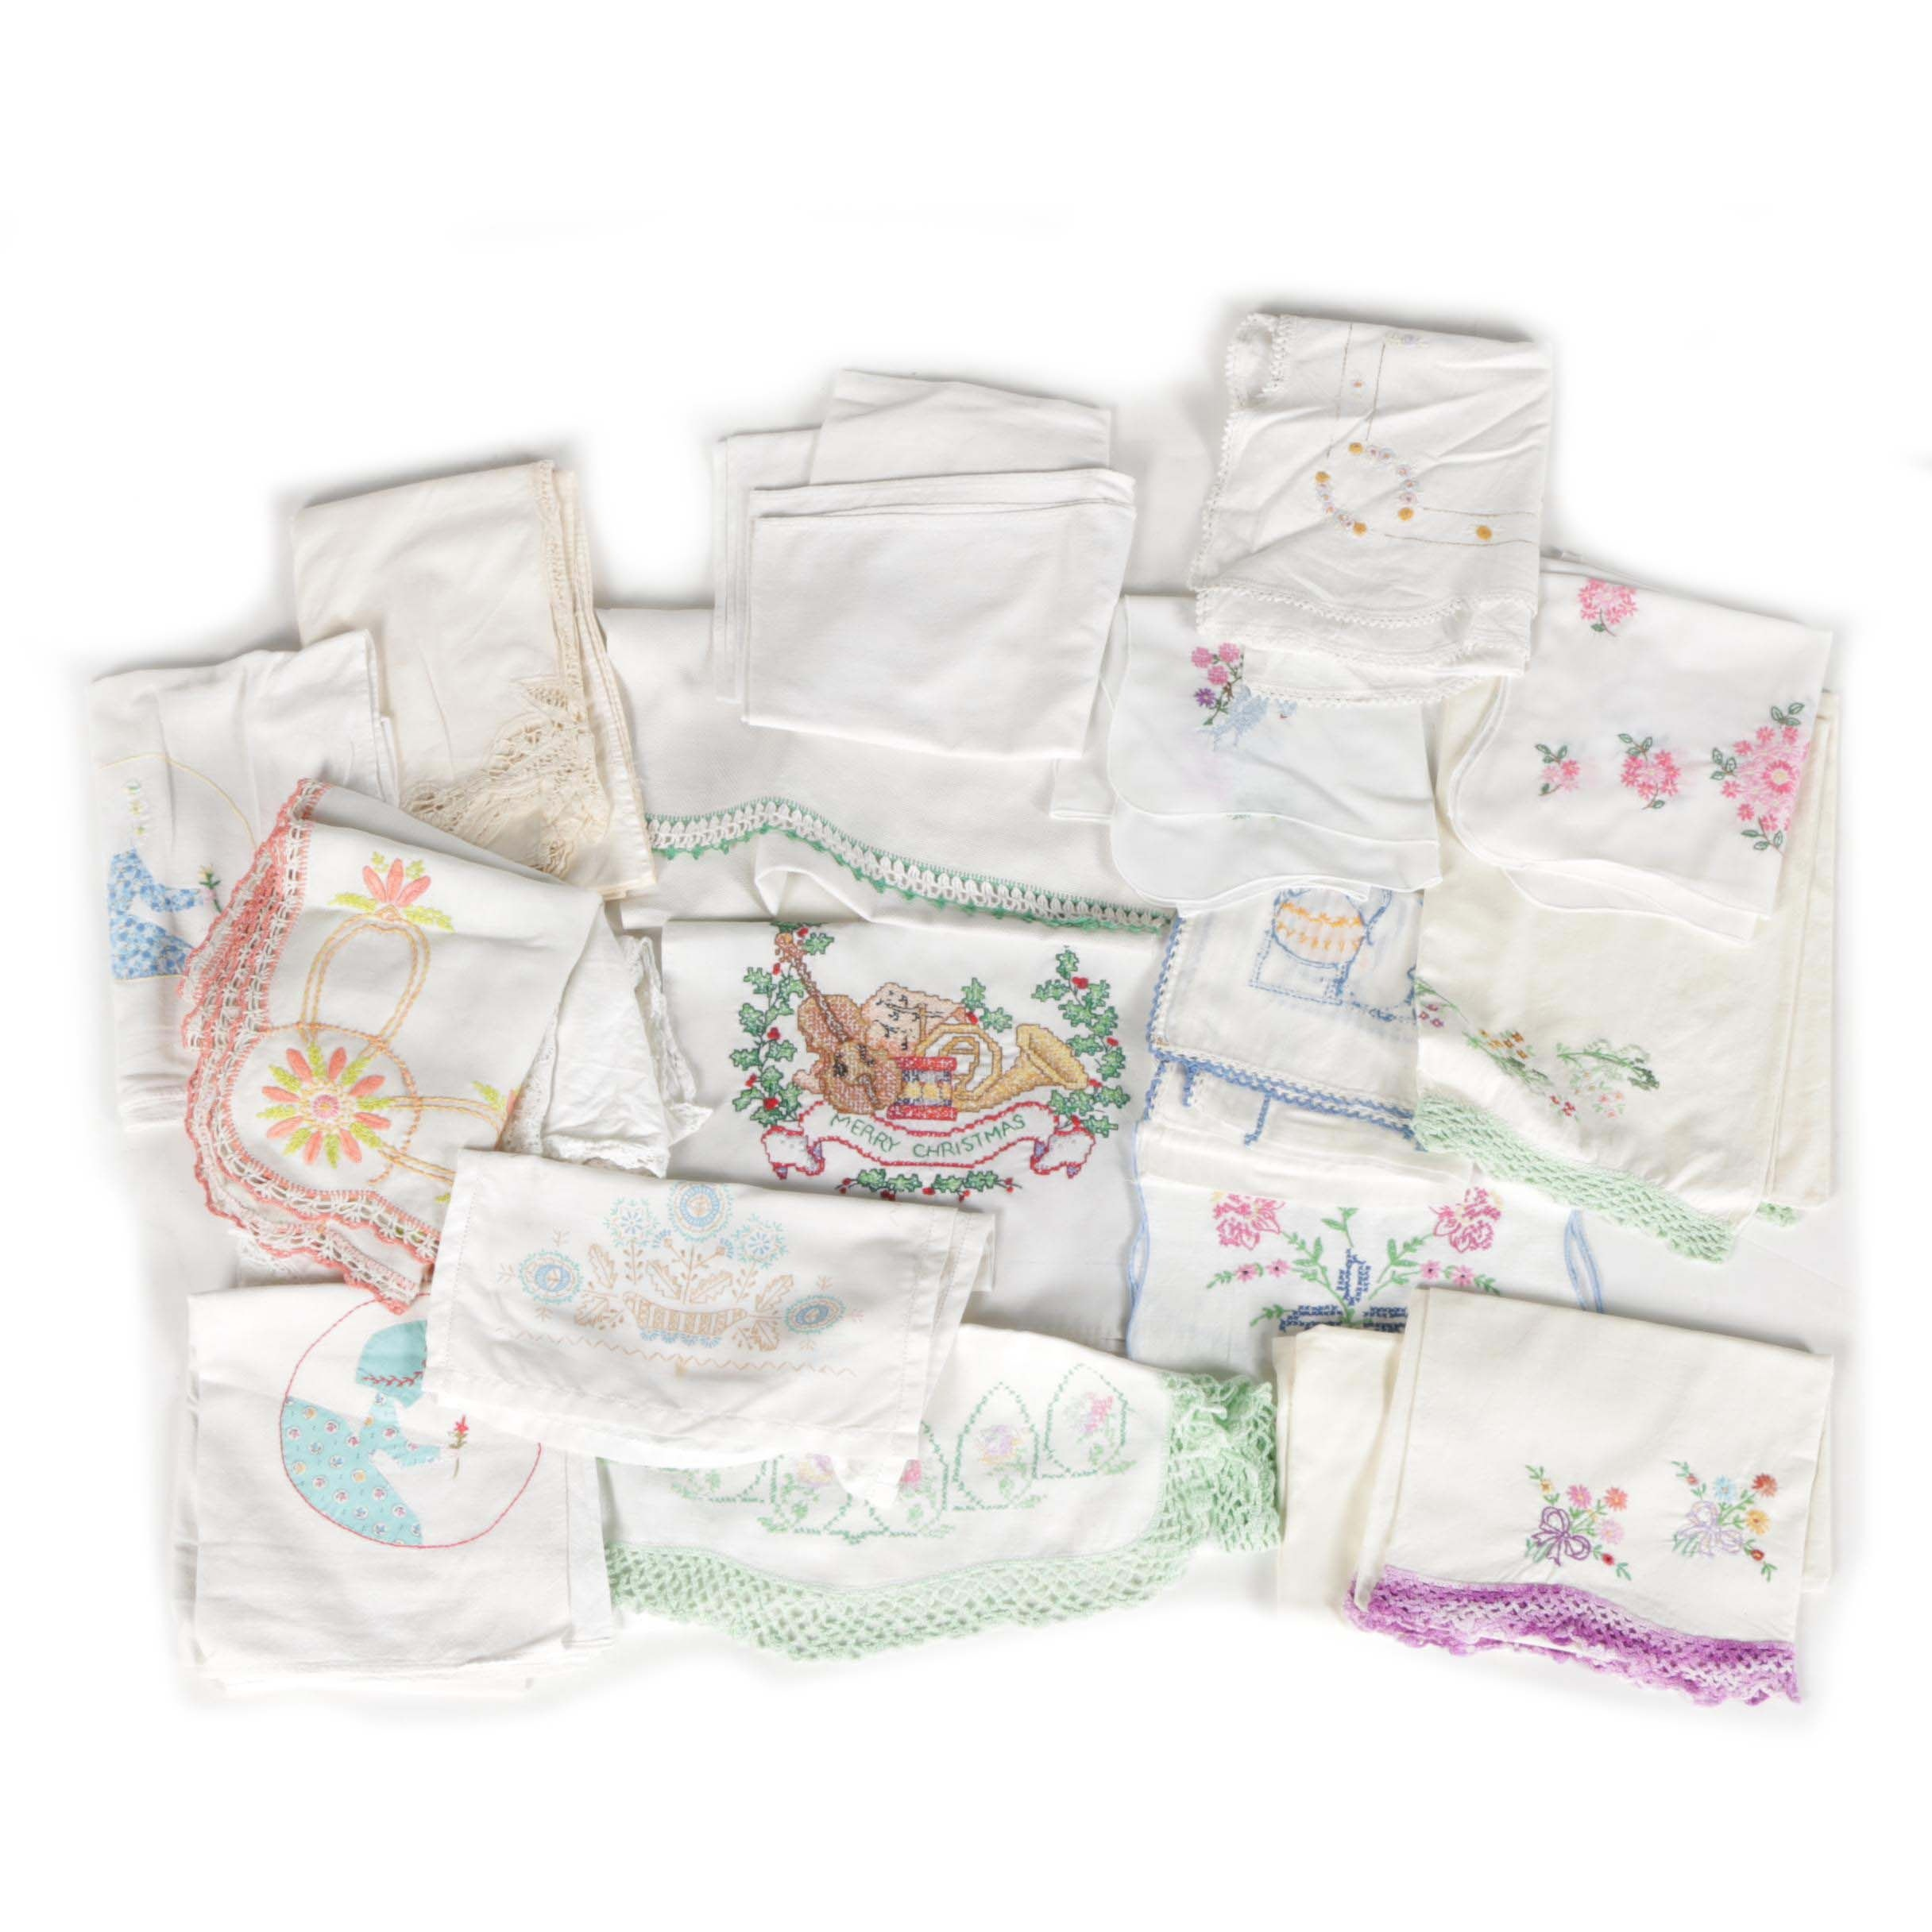 Hand-Embroidered Vintage Linens